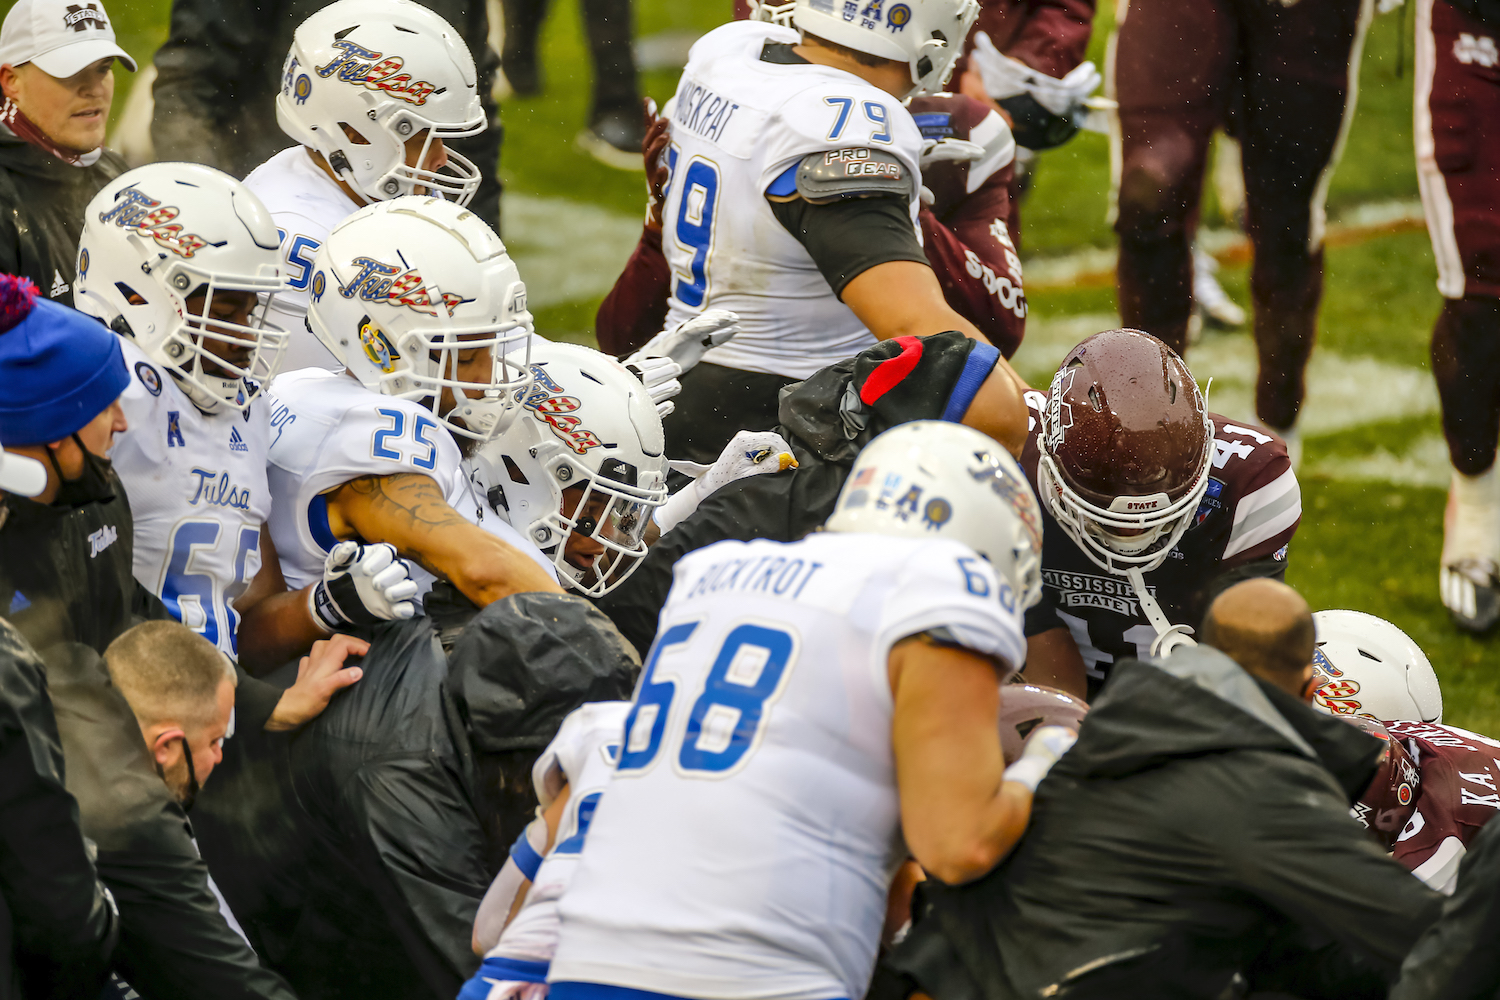 Brawl breaks out at Armed Forces Bowl game between the Tulsa Golden Hurricane and the Mississippi State Bulldogs